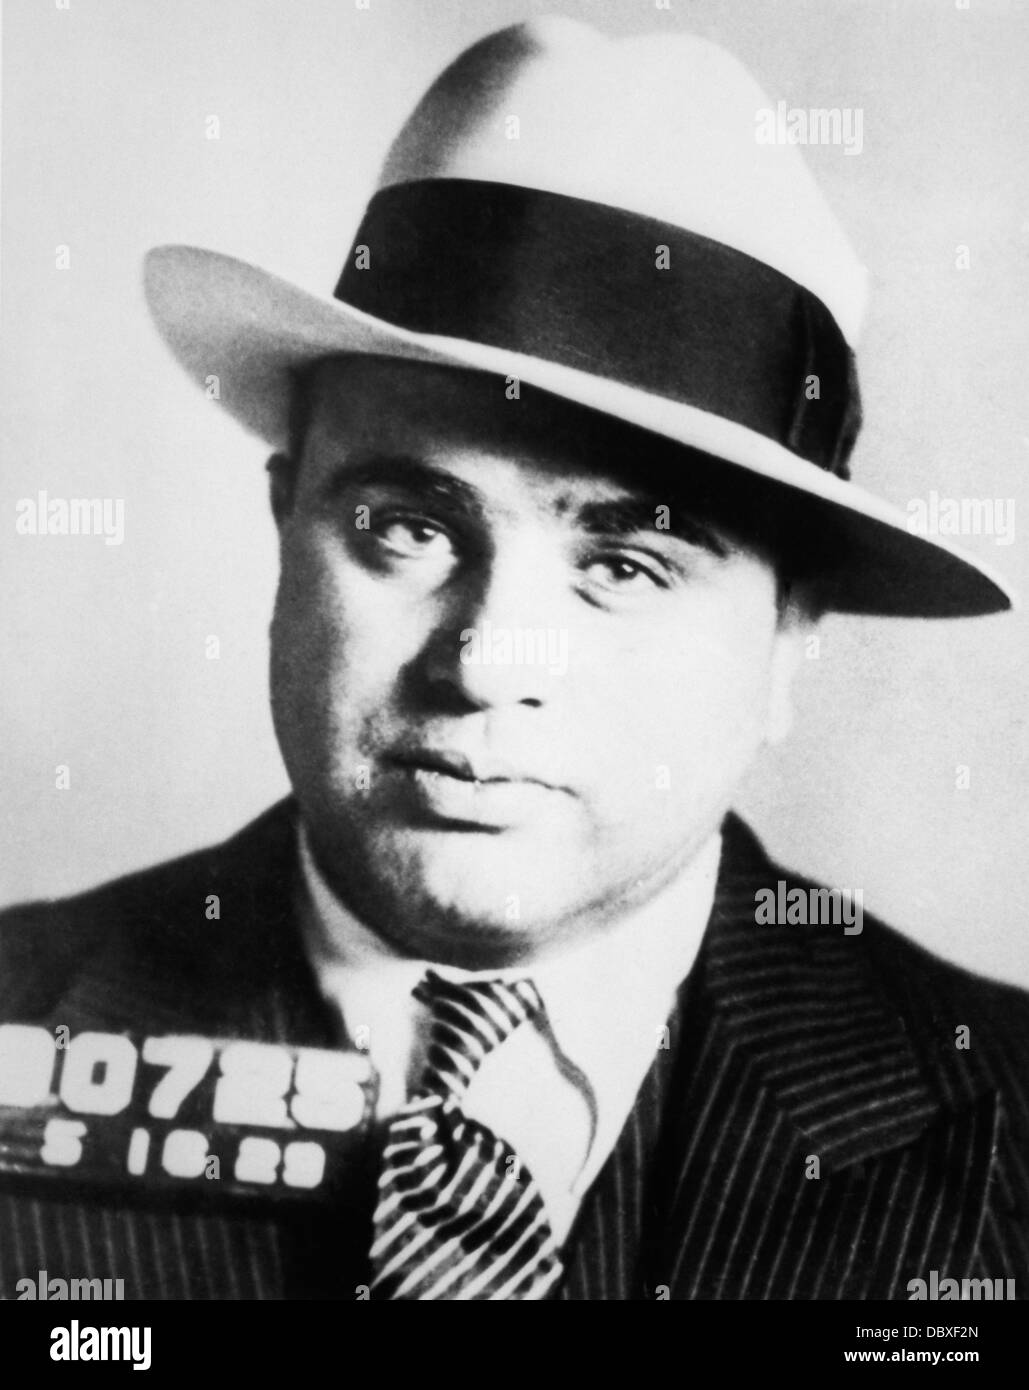 PRISON 1920 MUG SHOT OF CHICAGO gangster Al Capone SCARFACE Photo Stock